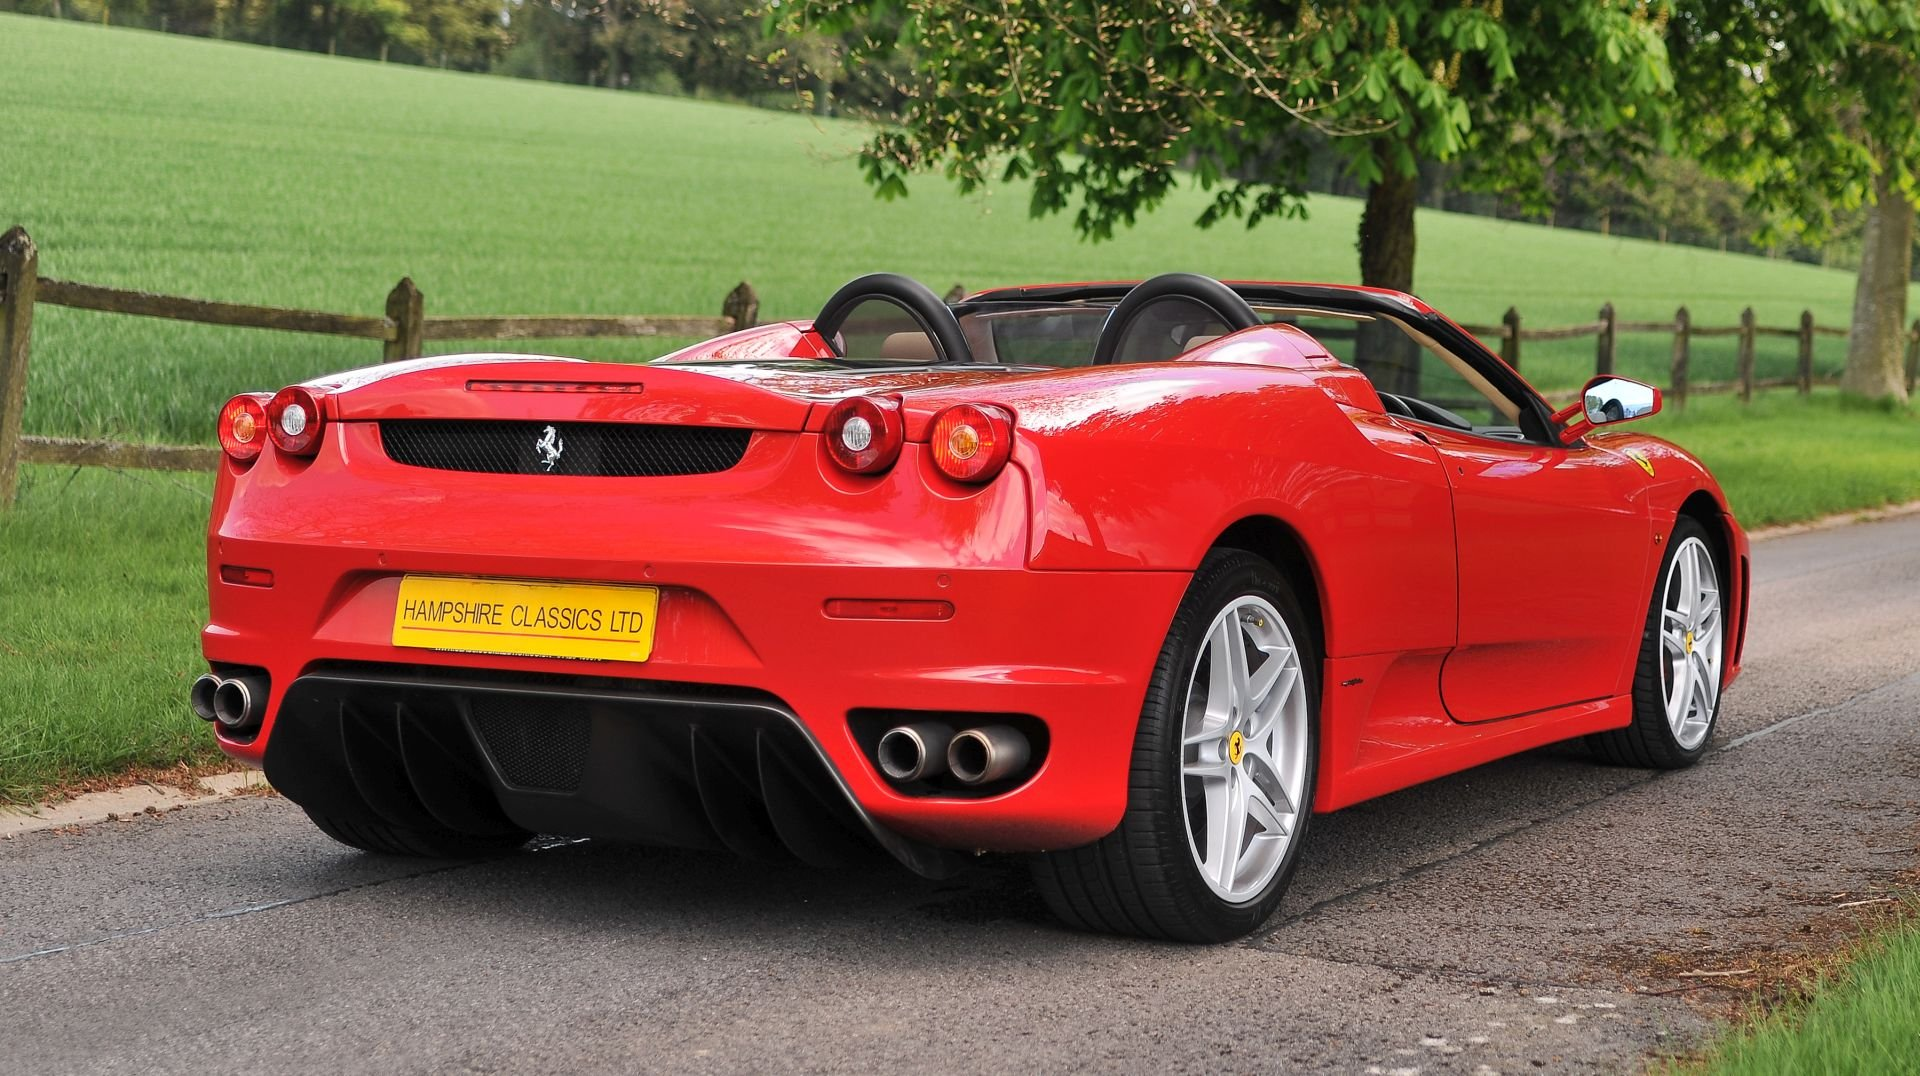 2007 Ferrari F430 Spider Manual with Only 17,412 Miles For Sale (picture 2 of 6)